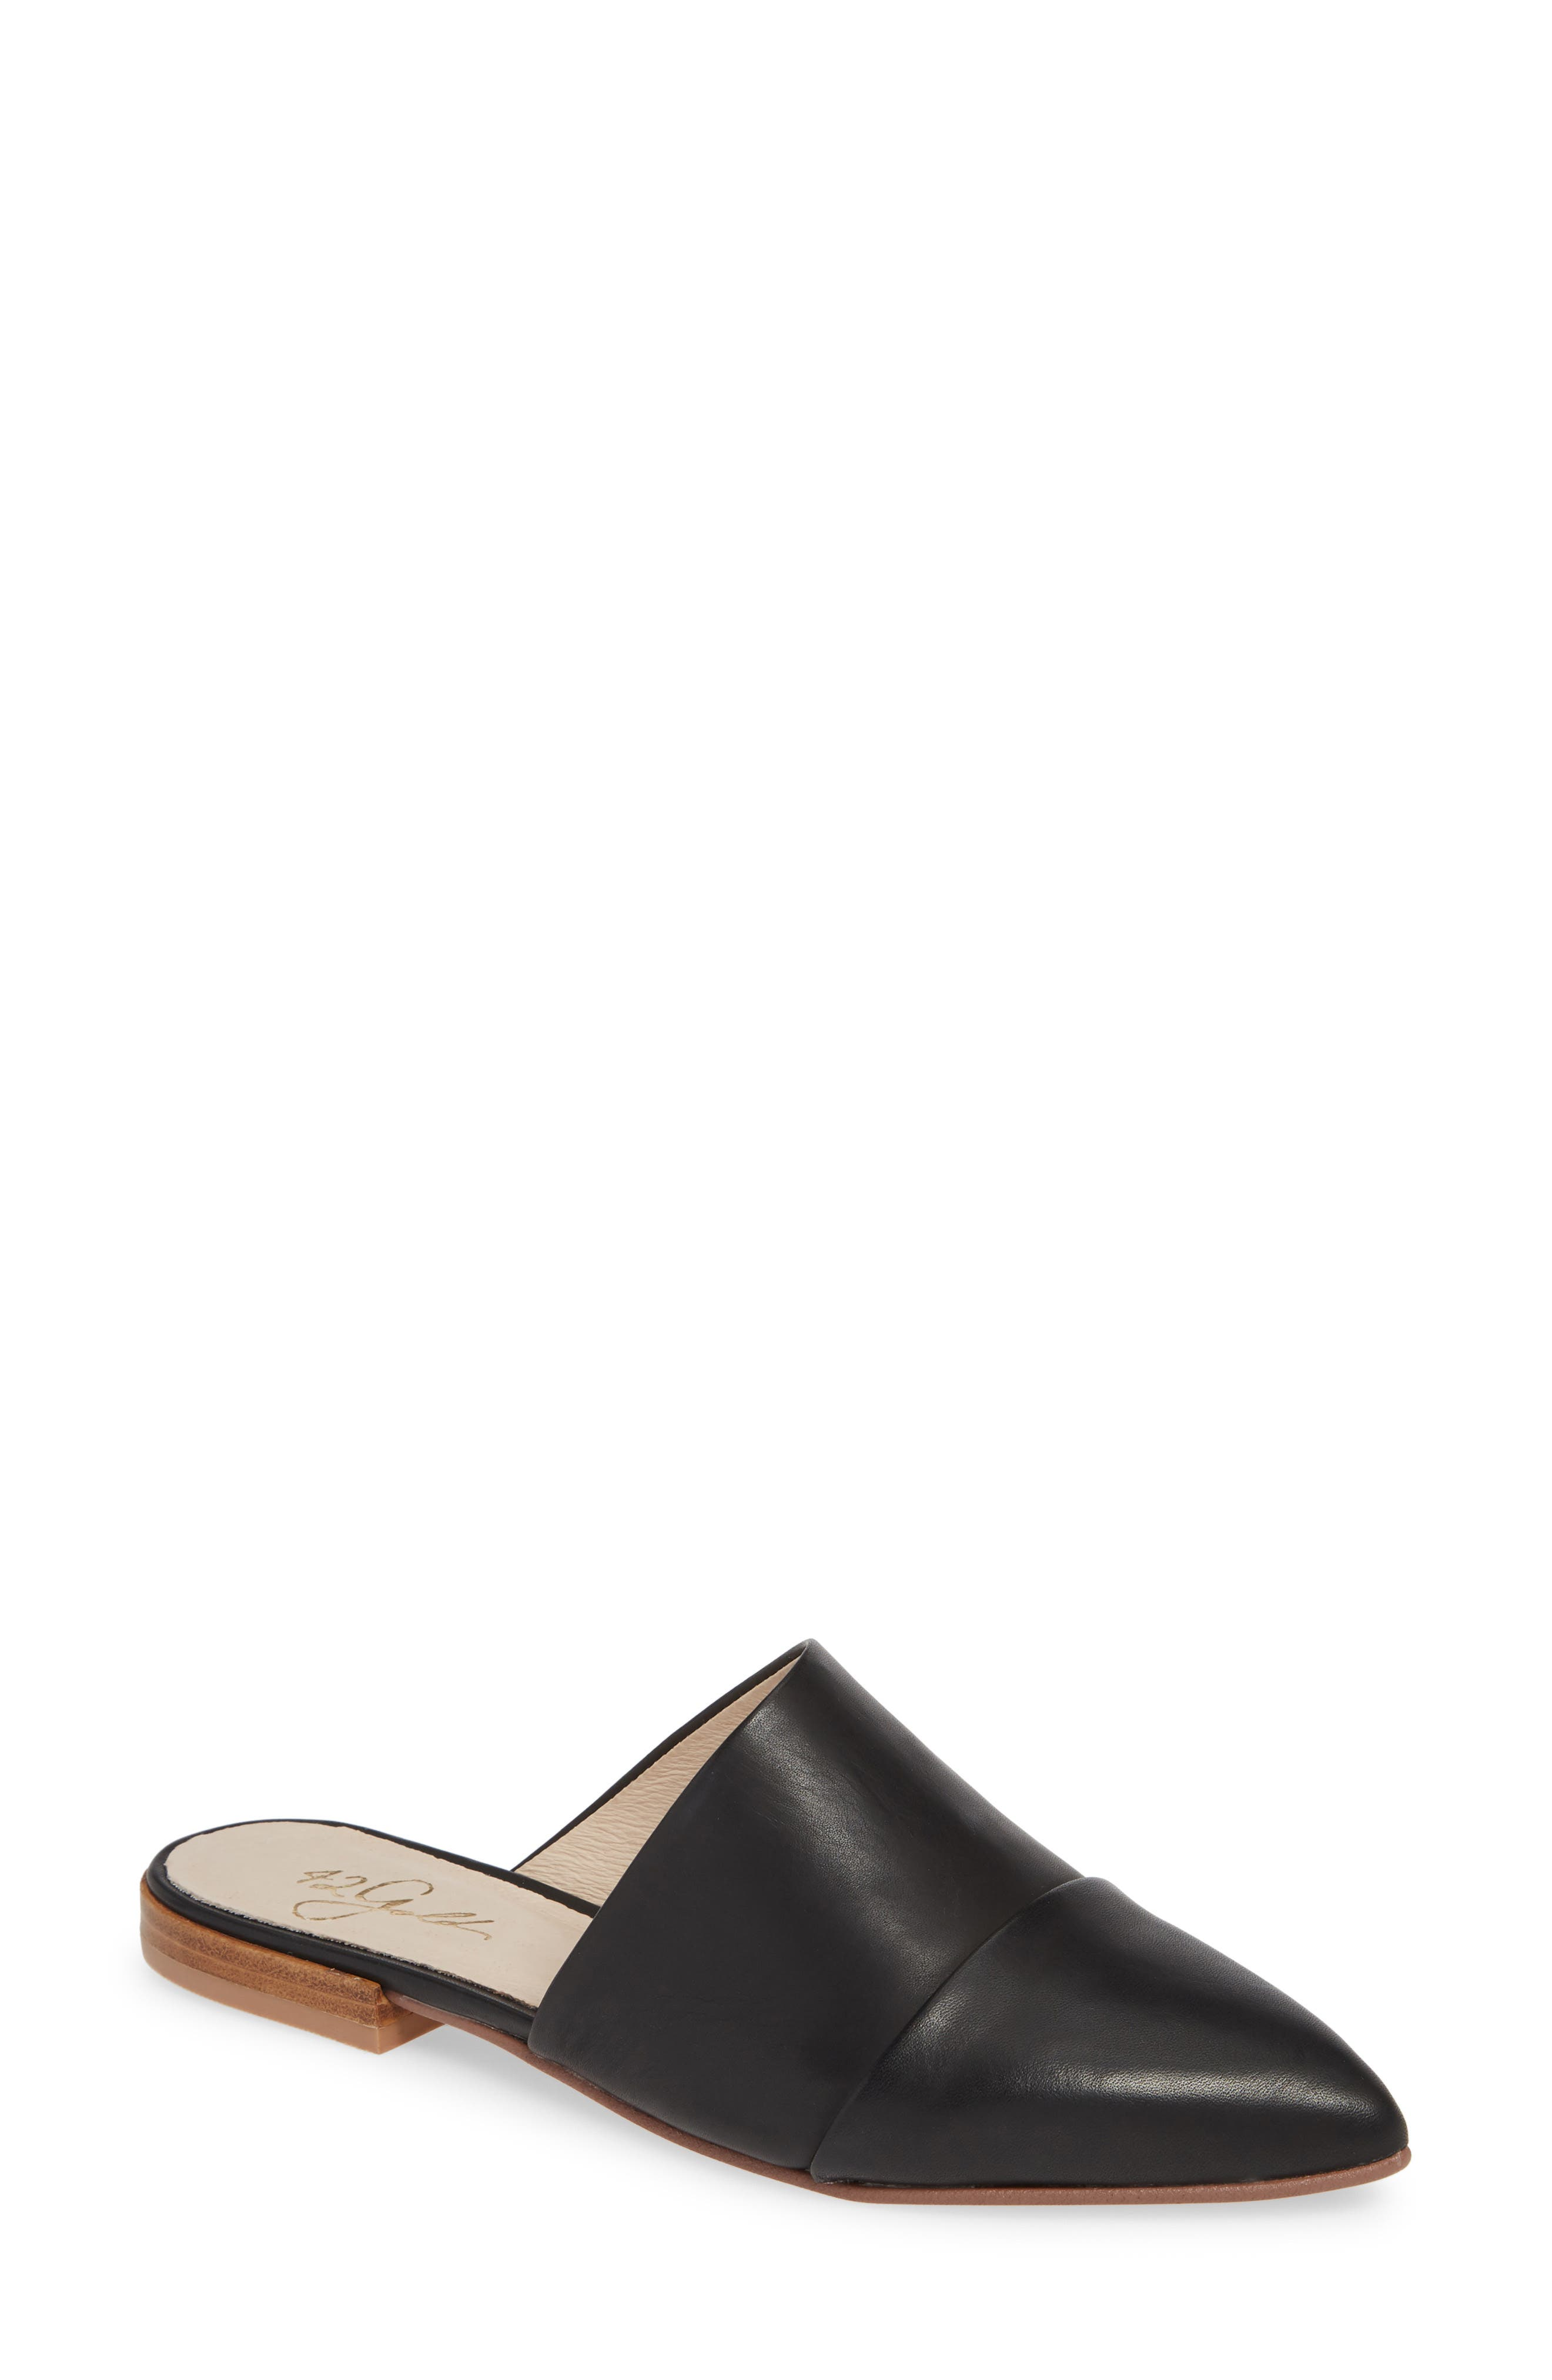 42 GOLD Castle Cap Toe Mule, Main, color, BLACK LEATHER